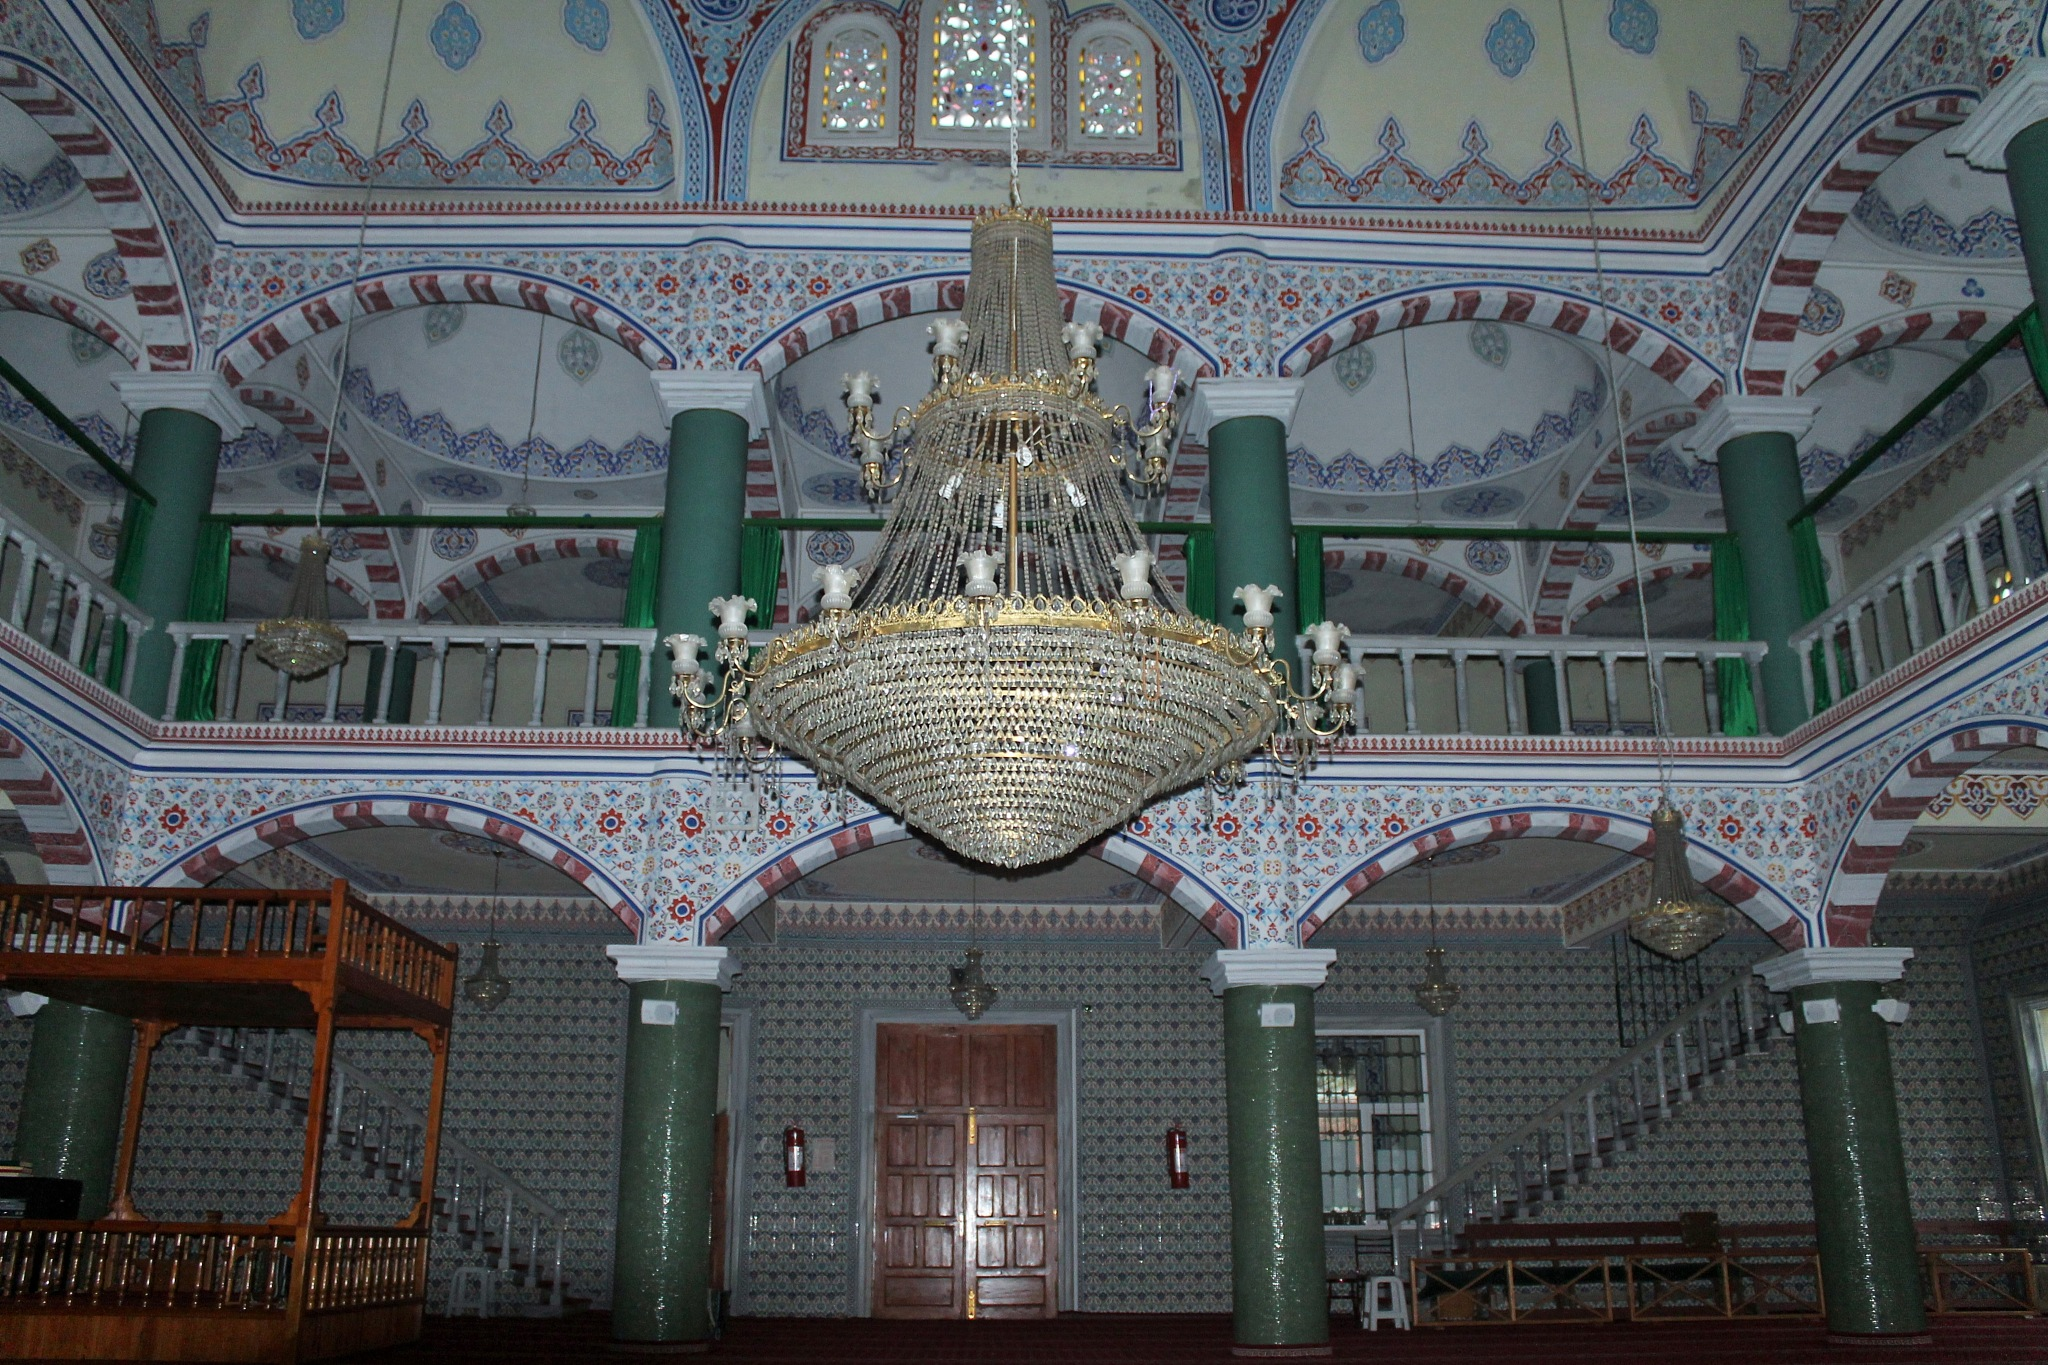 fatih mosque 4 by Ufuk Bolat